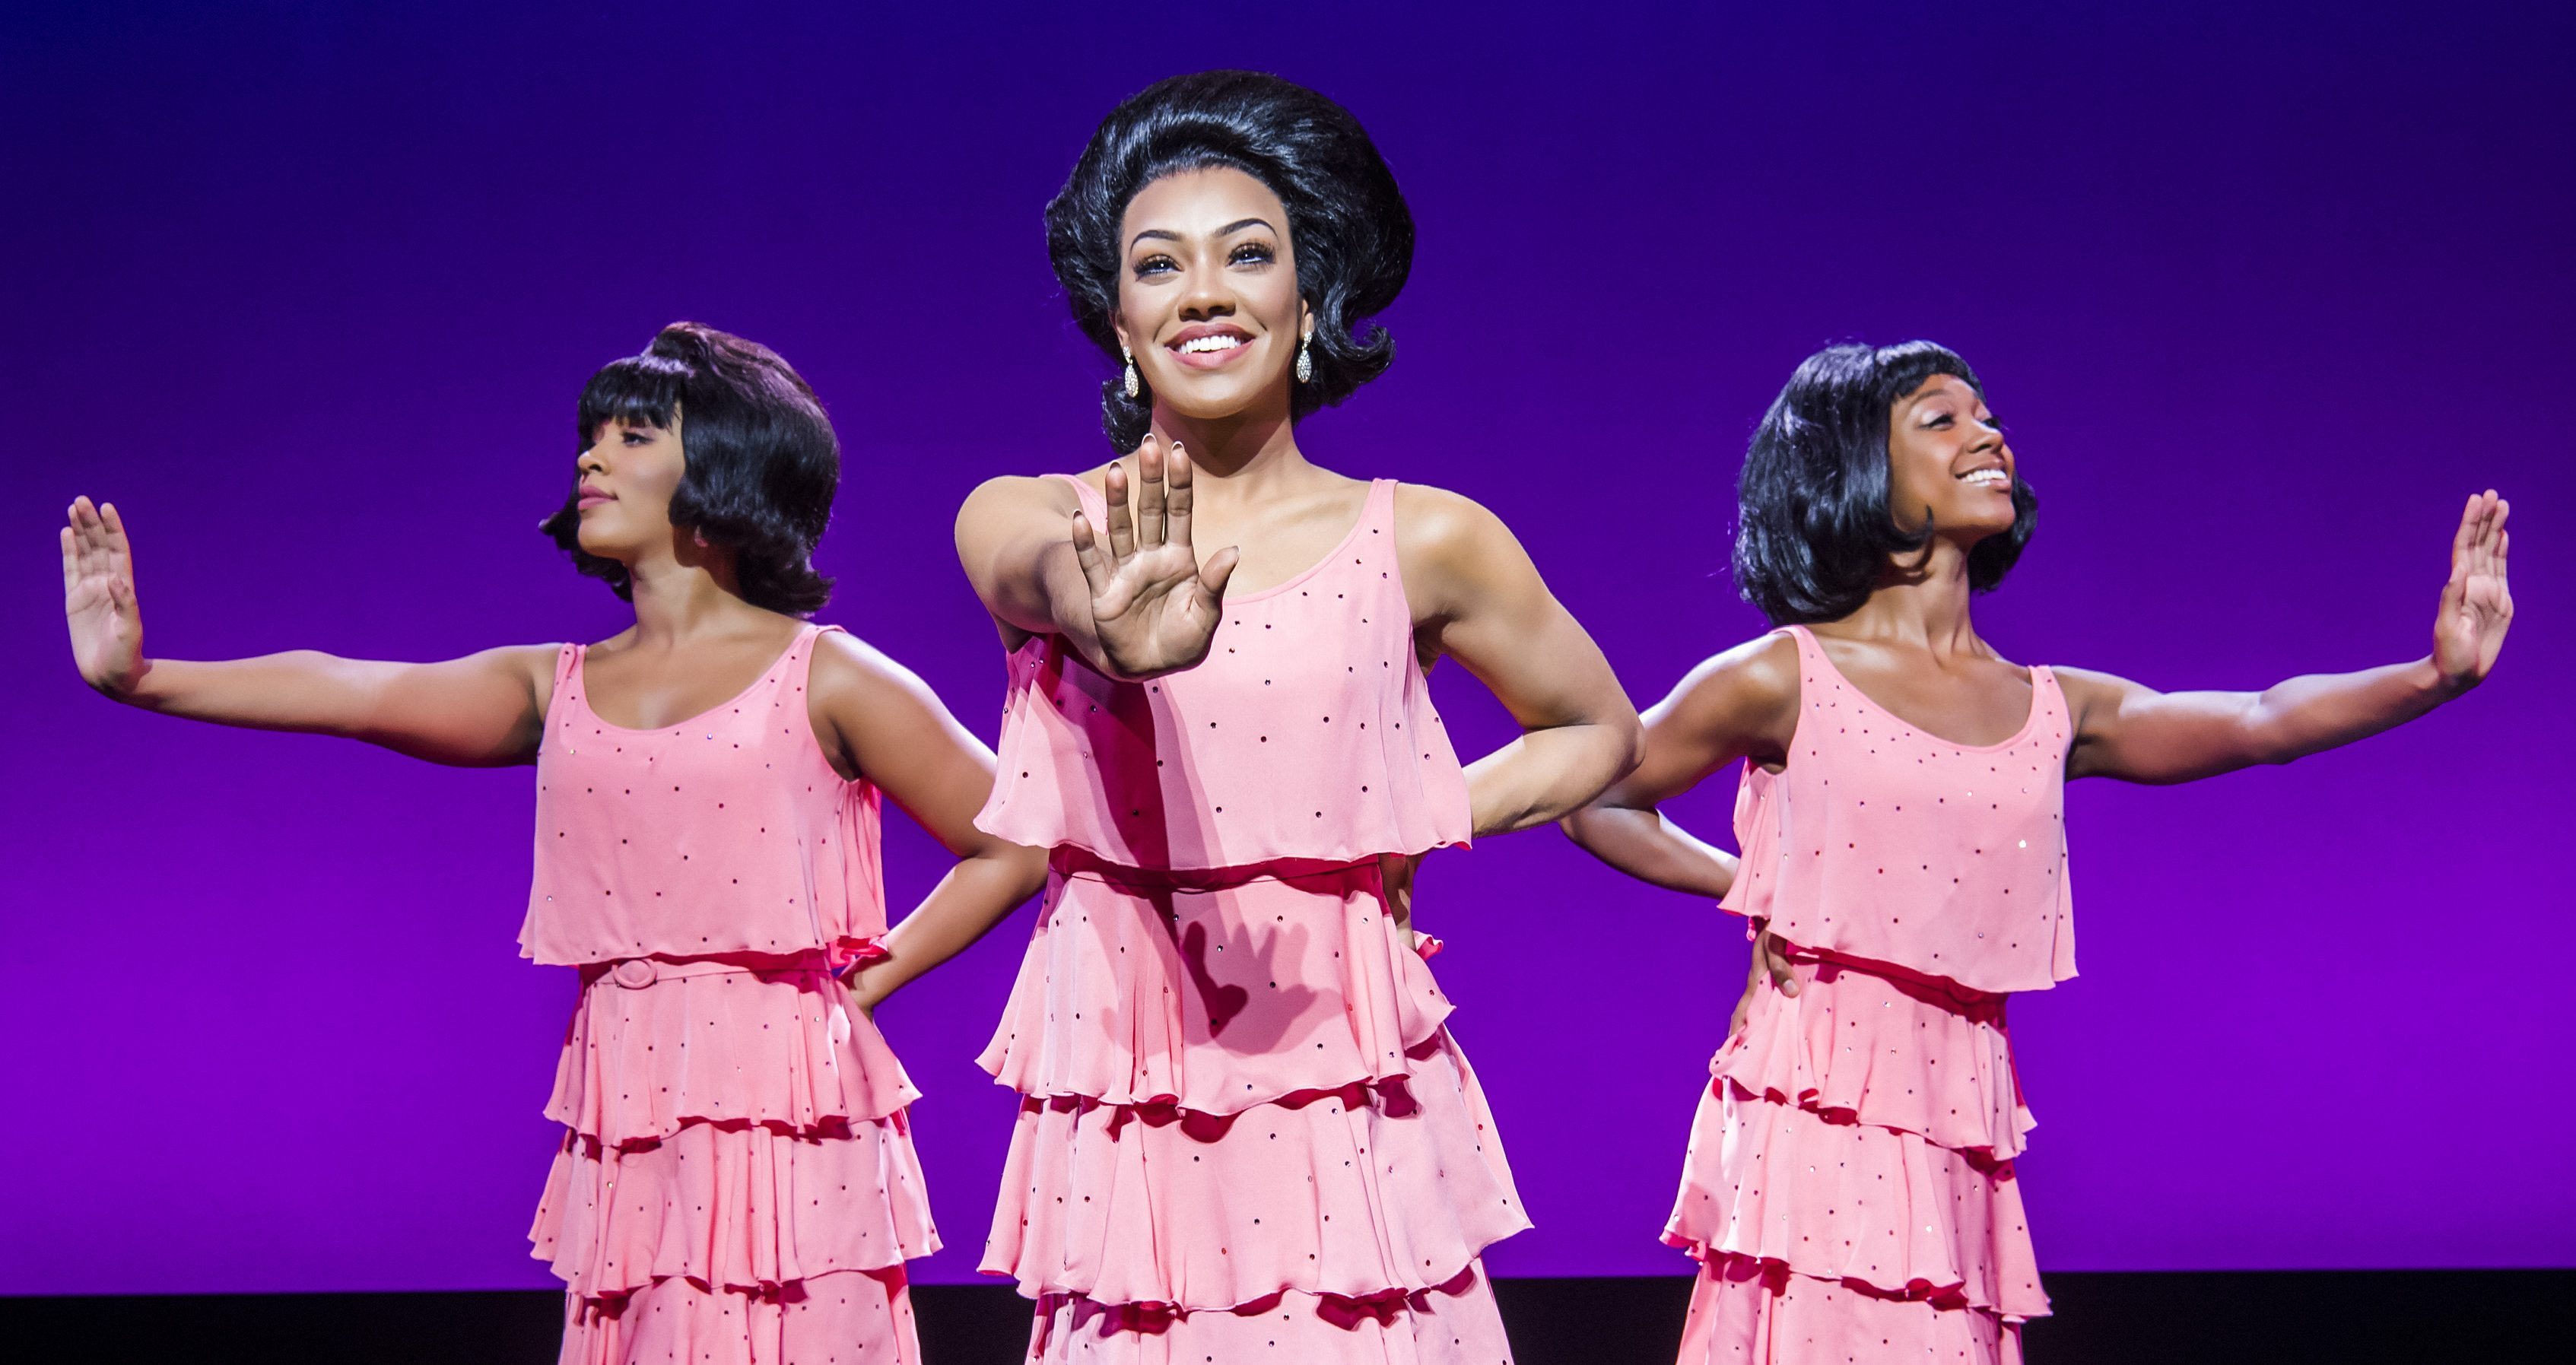 Motown the Musical. Motown the Musical. Three women in pink dresses, performing as Diana Ross and The Supremes in the theatre production, Motown the Musical. Photo by Tristram Kenton.